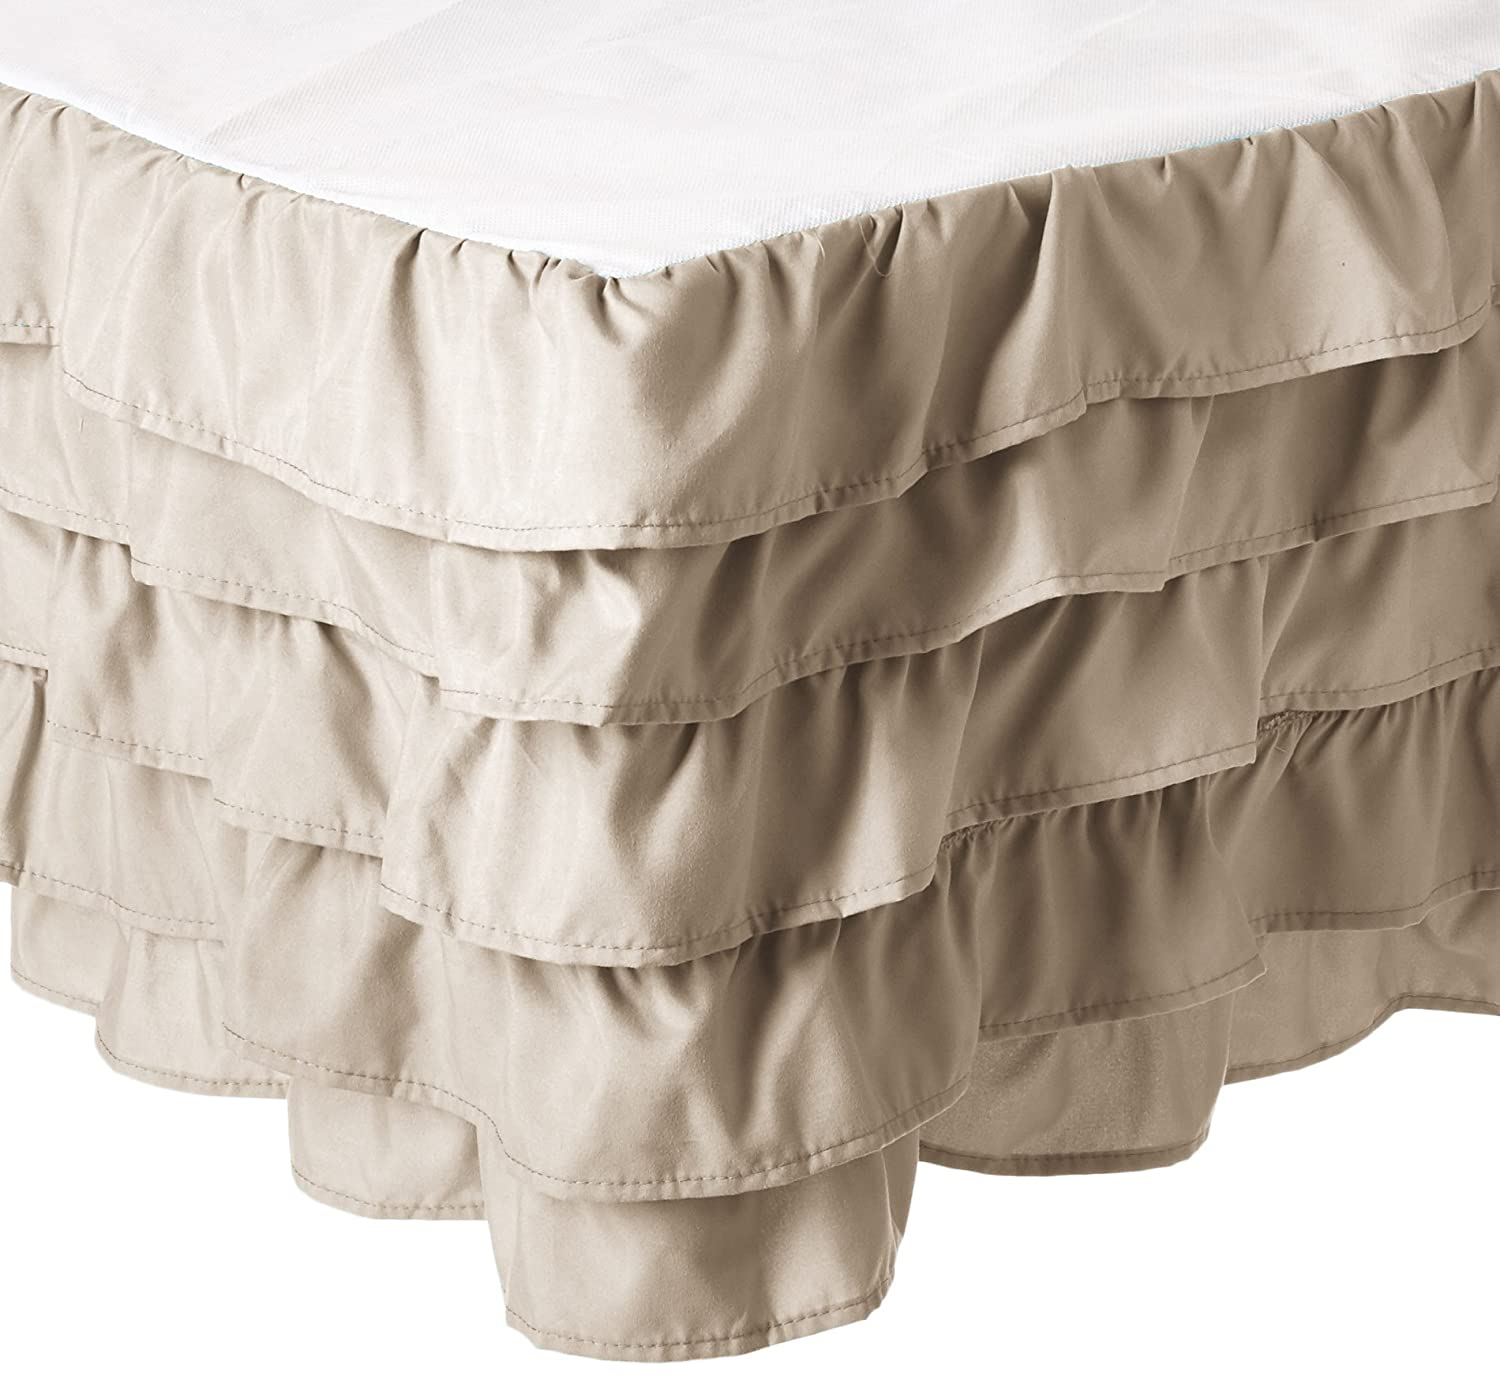 (Queen, Cream) Elegant Comfort Luxurious Premium Quality 1500 Thread Count Wrinkle and Fade Resistant Egyptian Quality Microfiber Multi-Ruffle Bed Skirt 38cm Drop, Queen, Cream B0714B9TH6 クイーン|クリーム クリーム クイーン